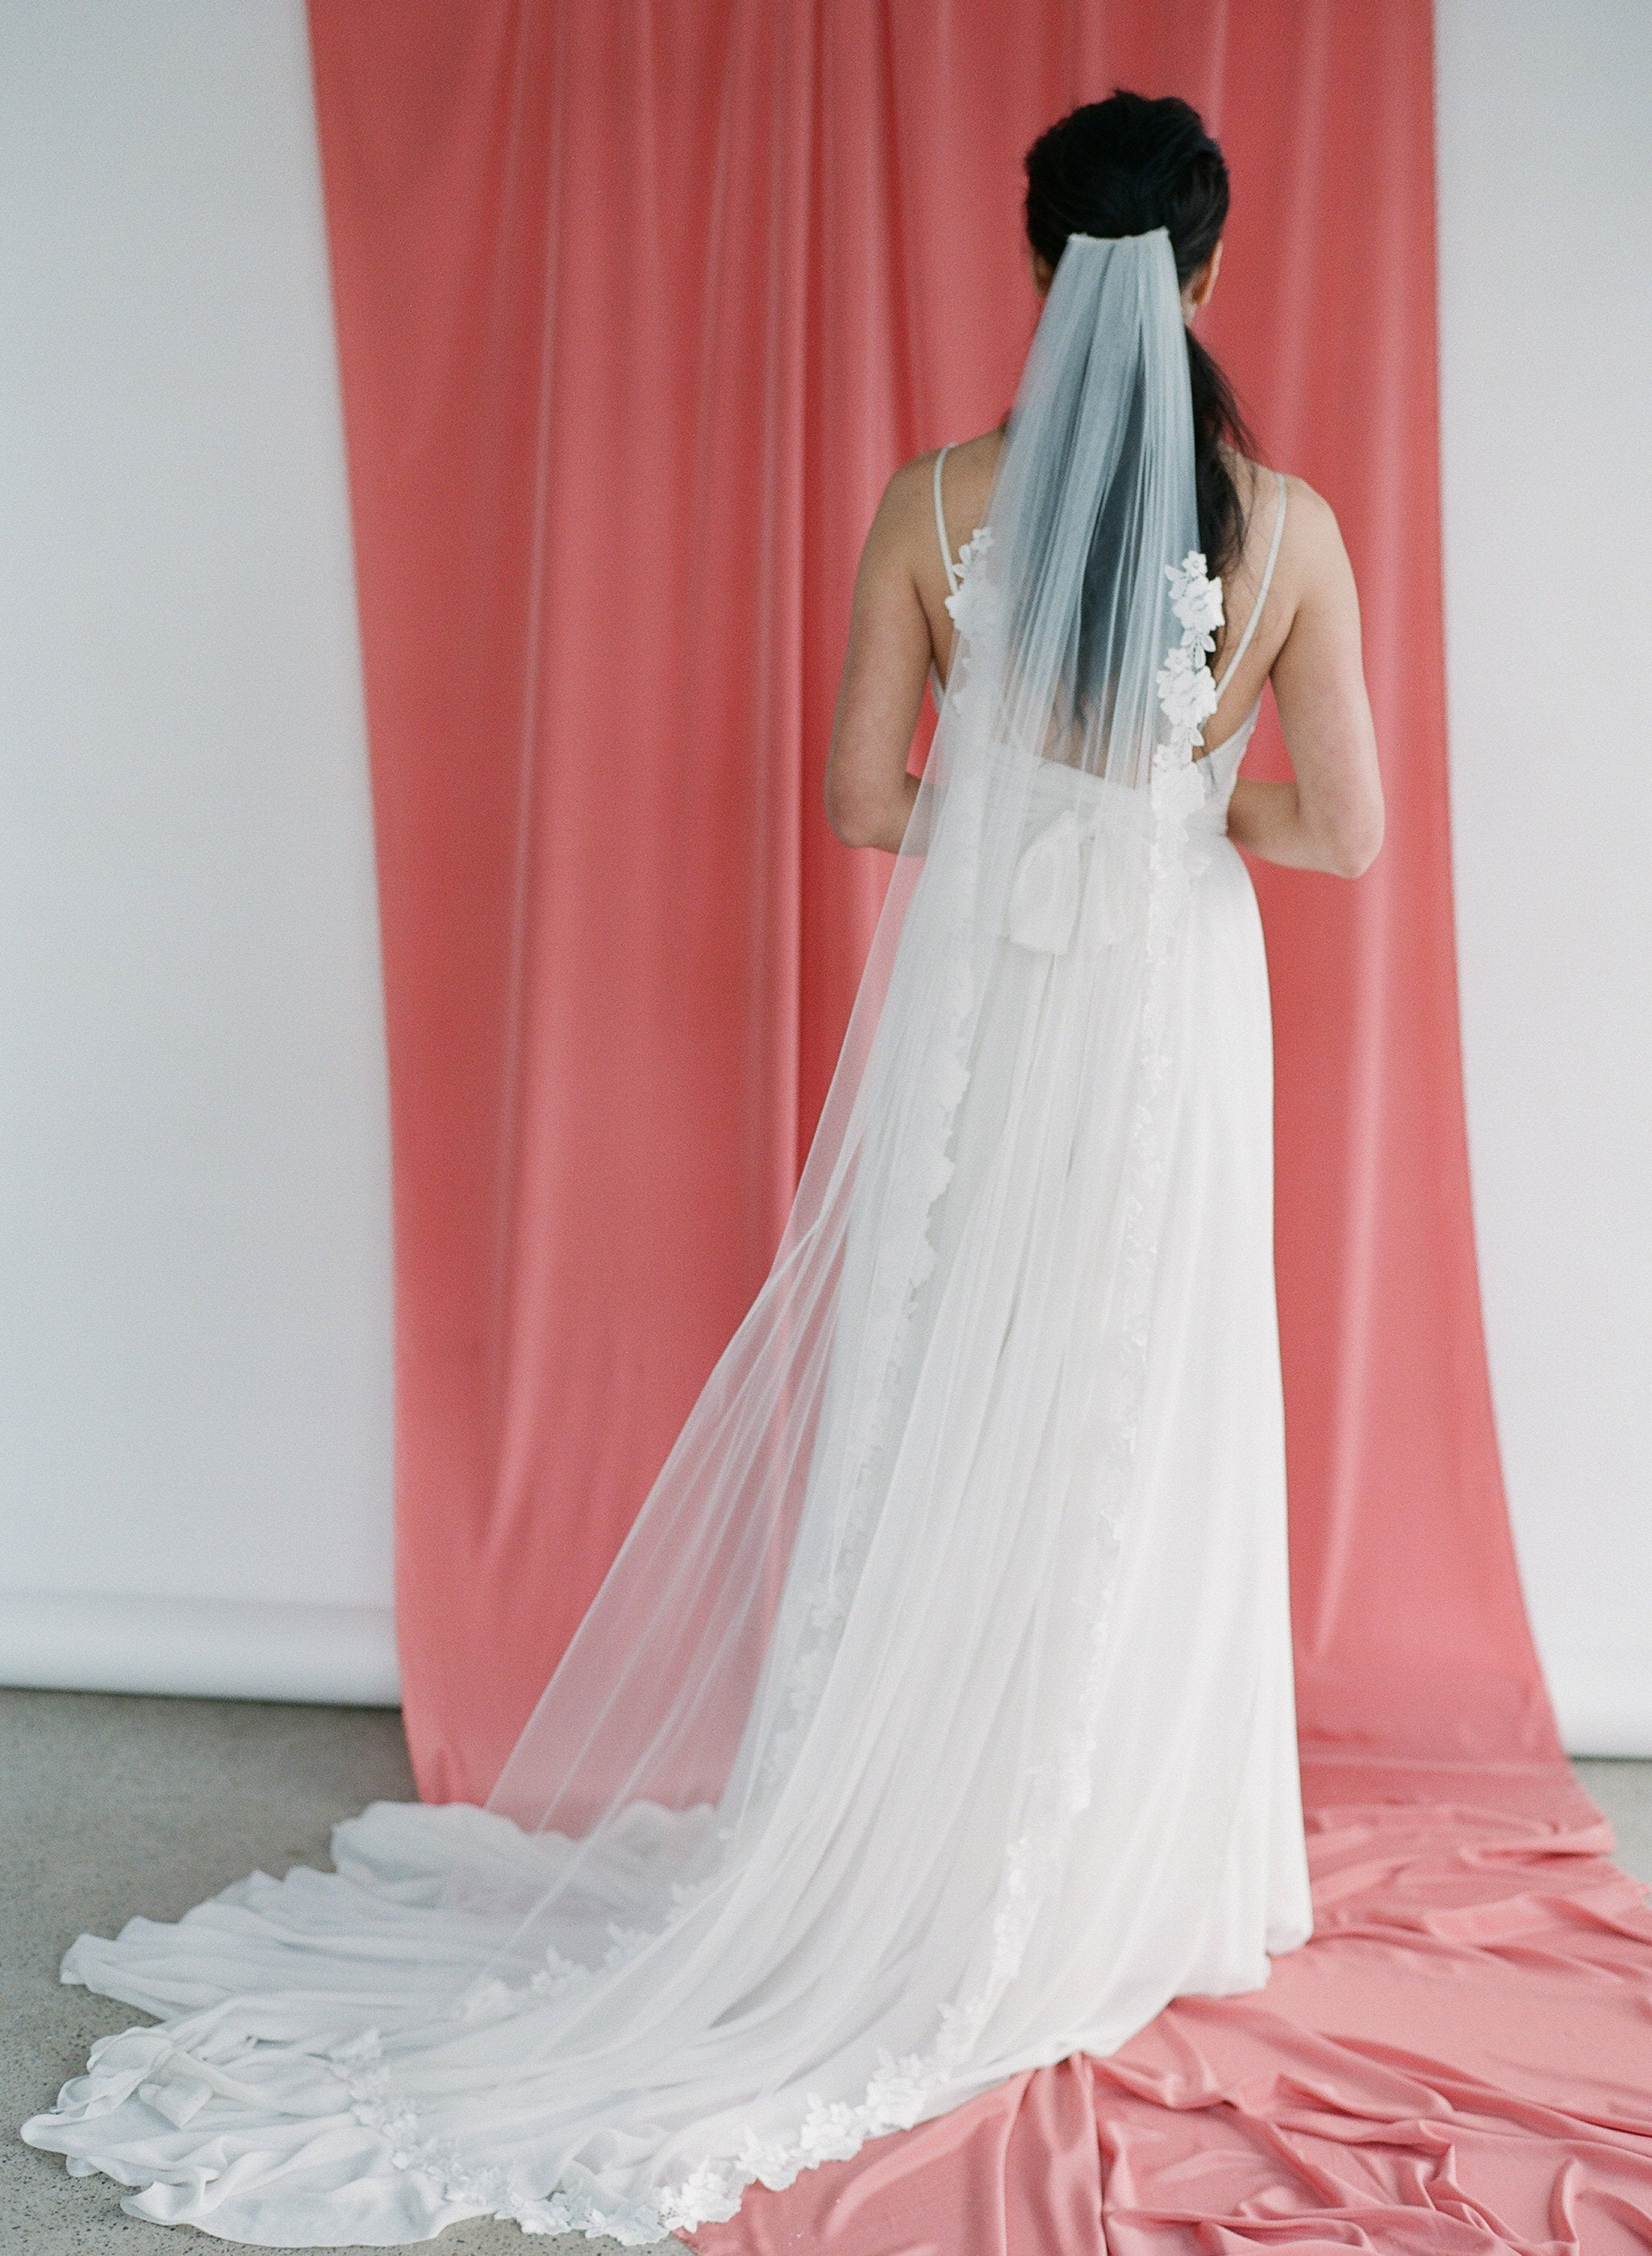 Simple tulle veil with a delicate floral lace trim